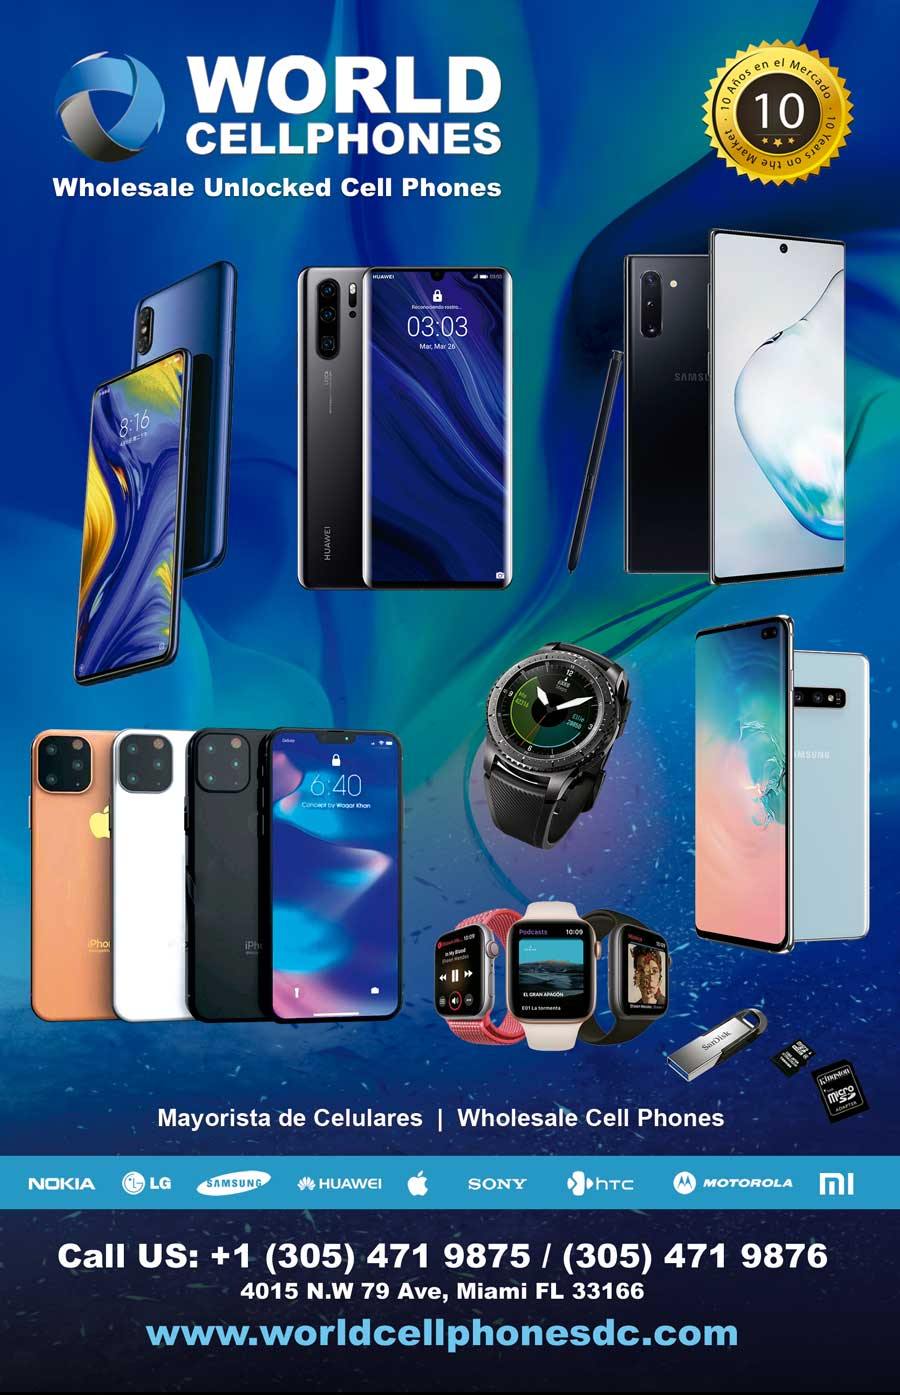 World Cell Phones DC: Distribuidor de Celulares Desbloqueado